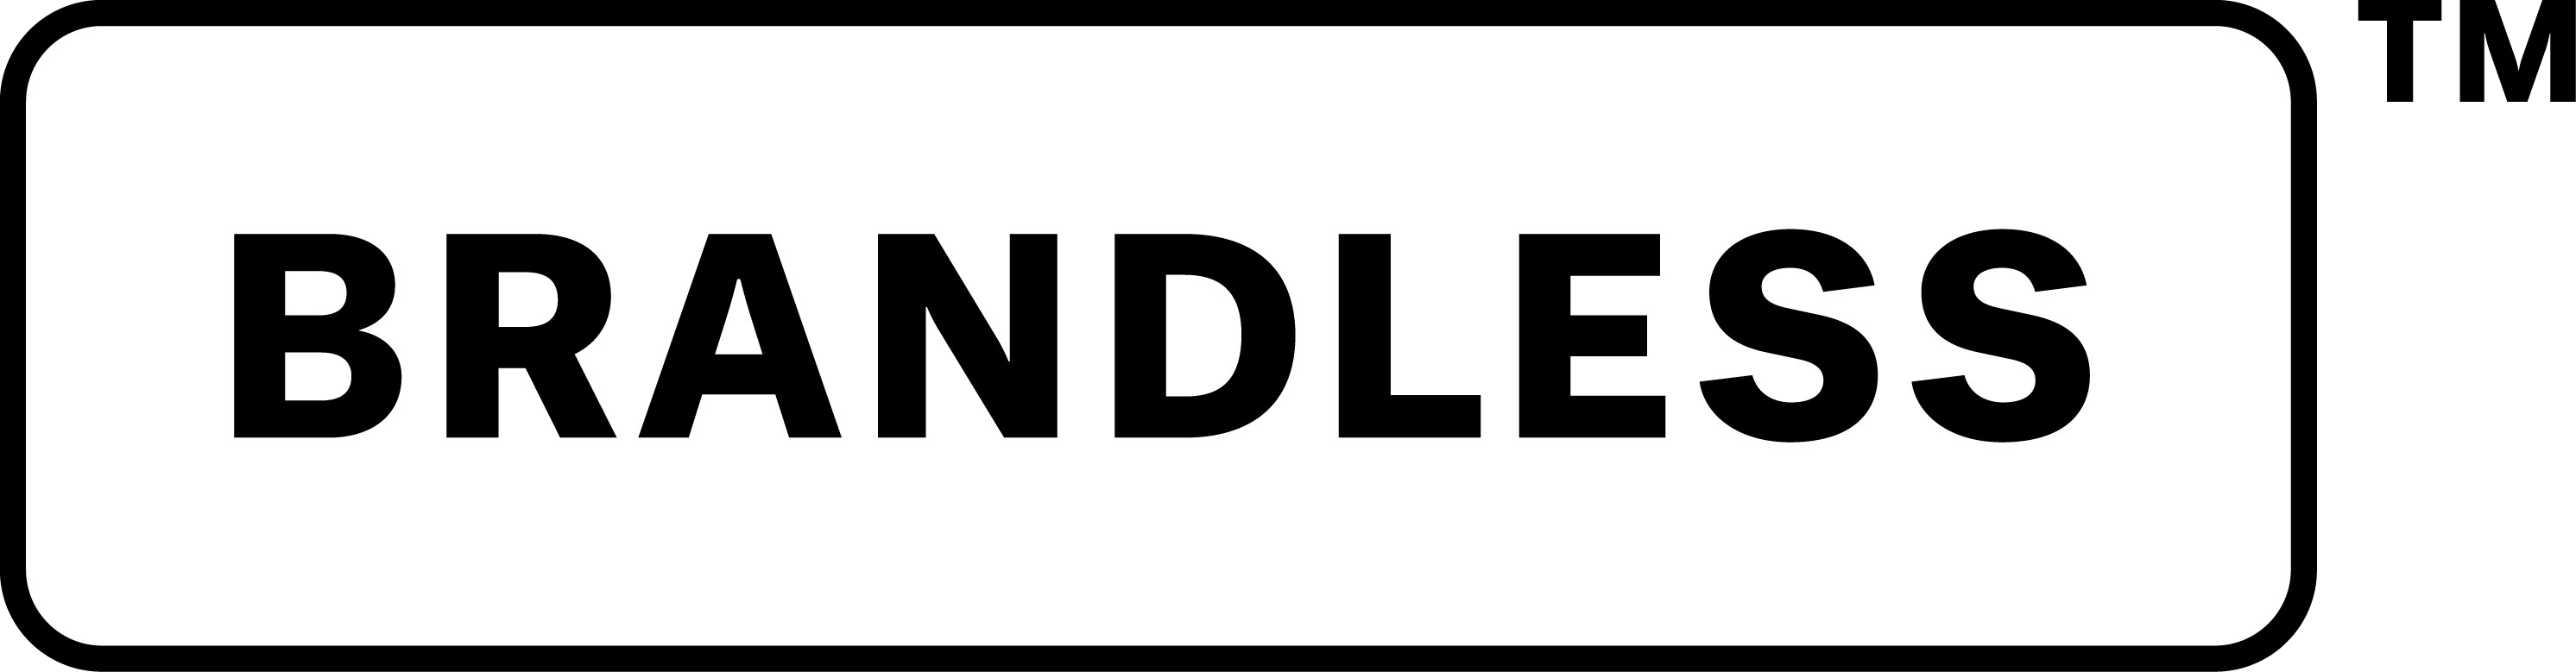 Image result for brandless logo